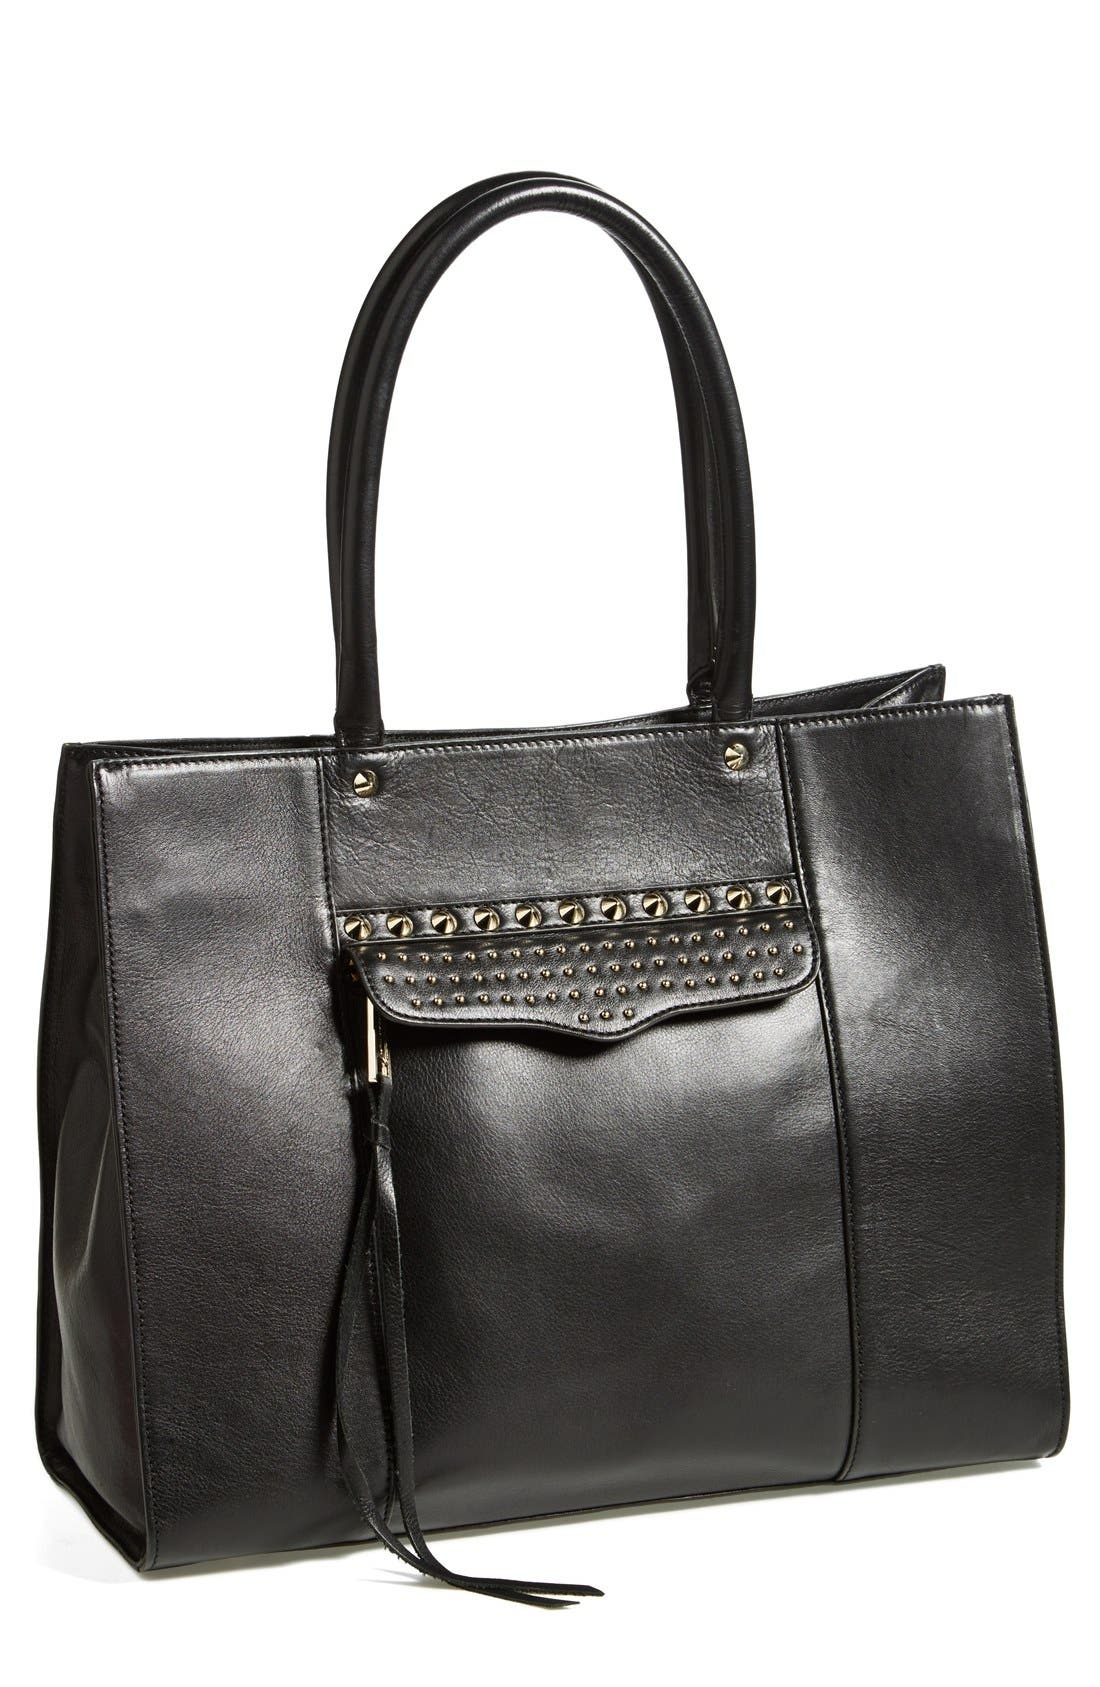 Alternate Image 1 Selected - Rebecca Minkoff 'Medium MAB' Studded Tote